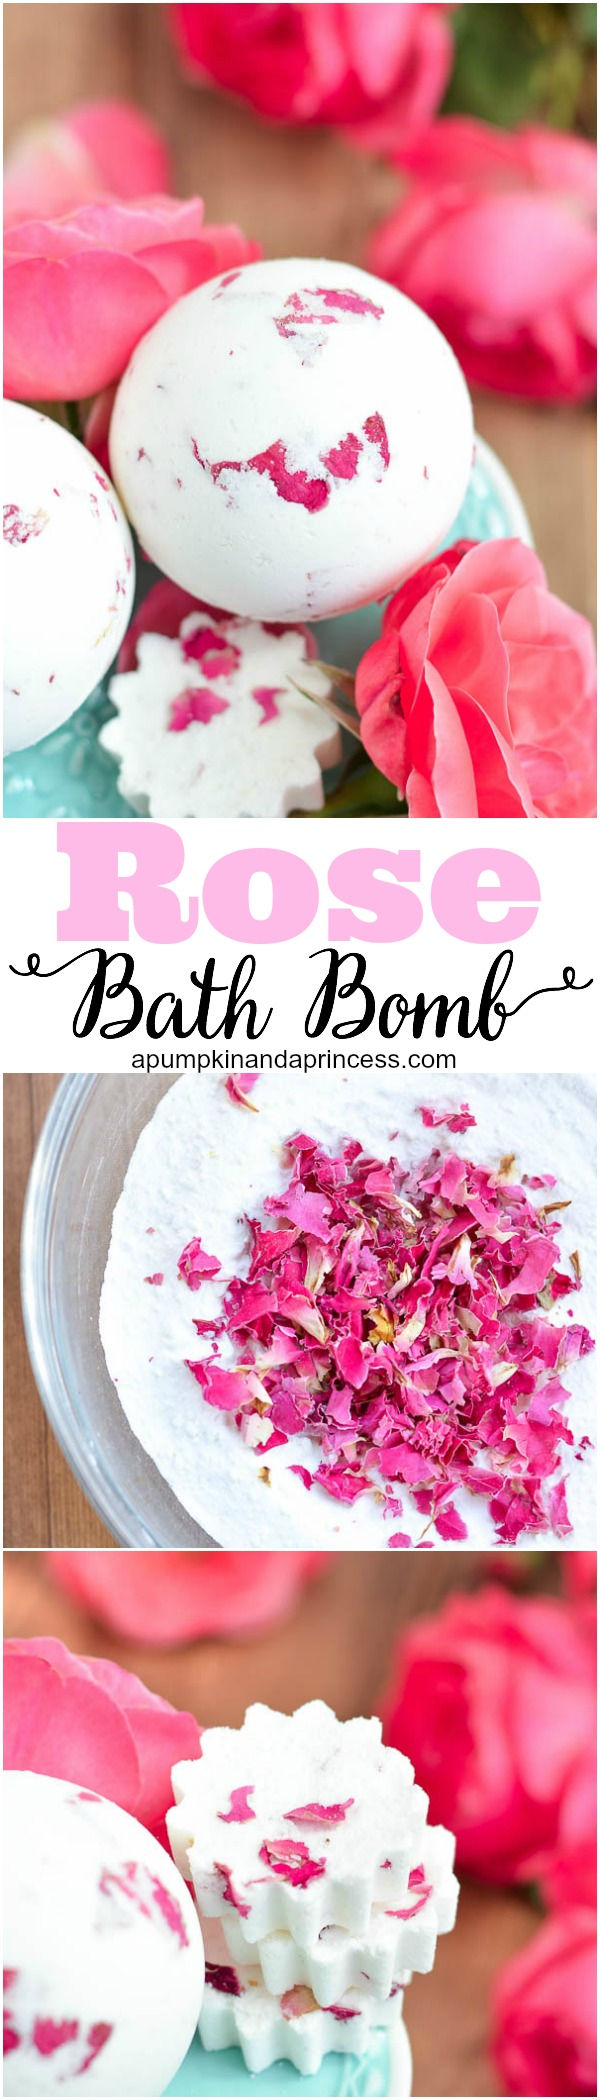 DIY Rose and Milk Bath Bomb